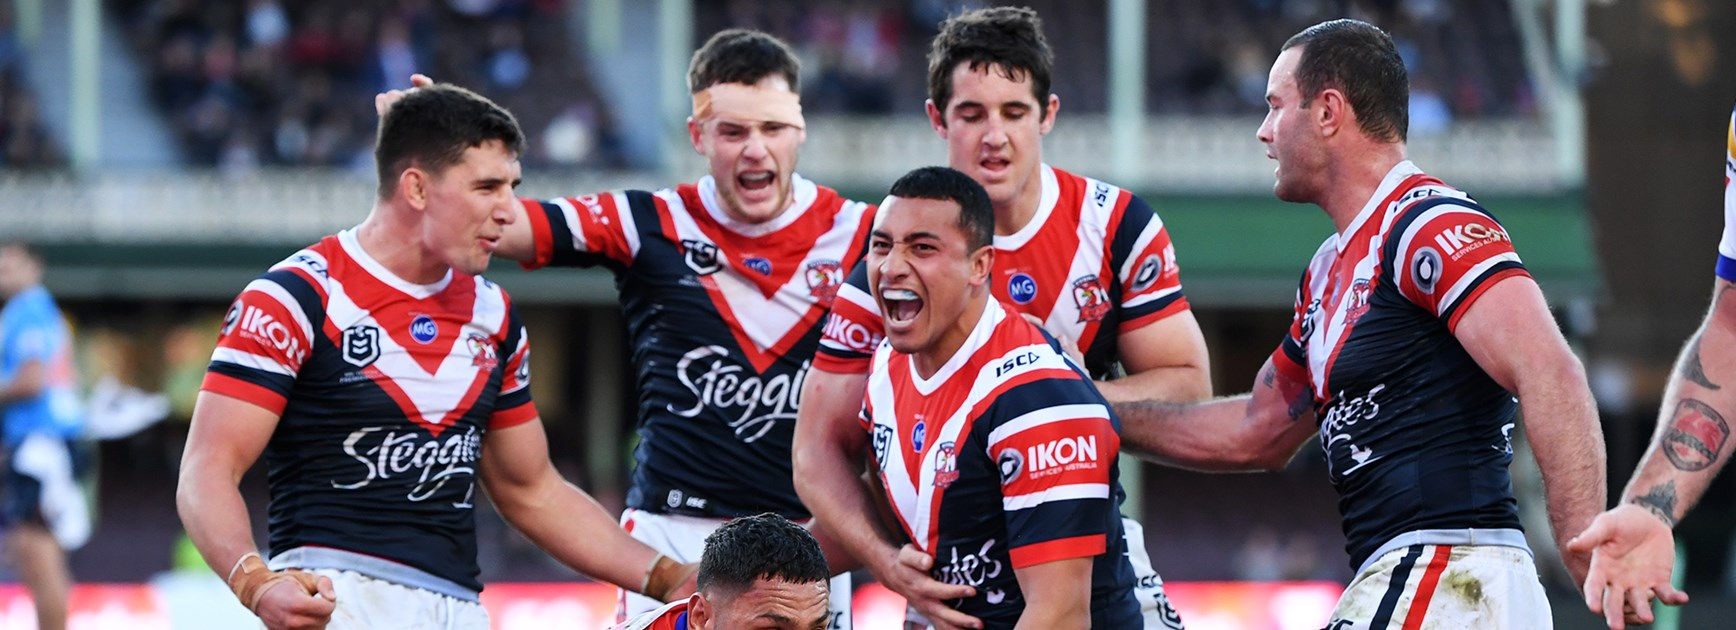 Sydney Roosters 2020 Squad